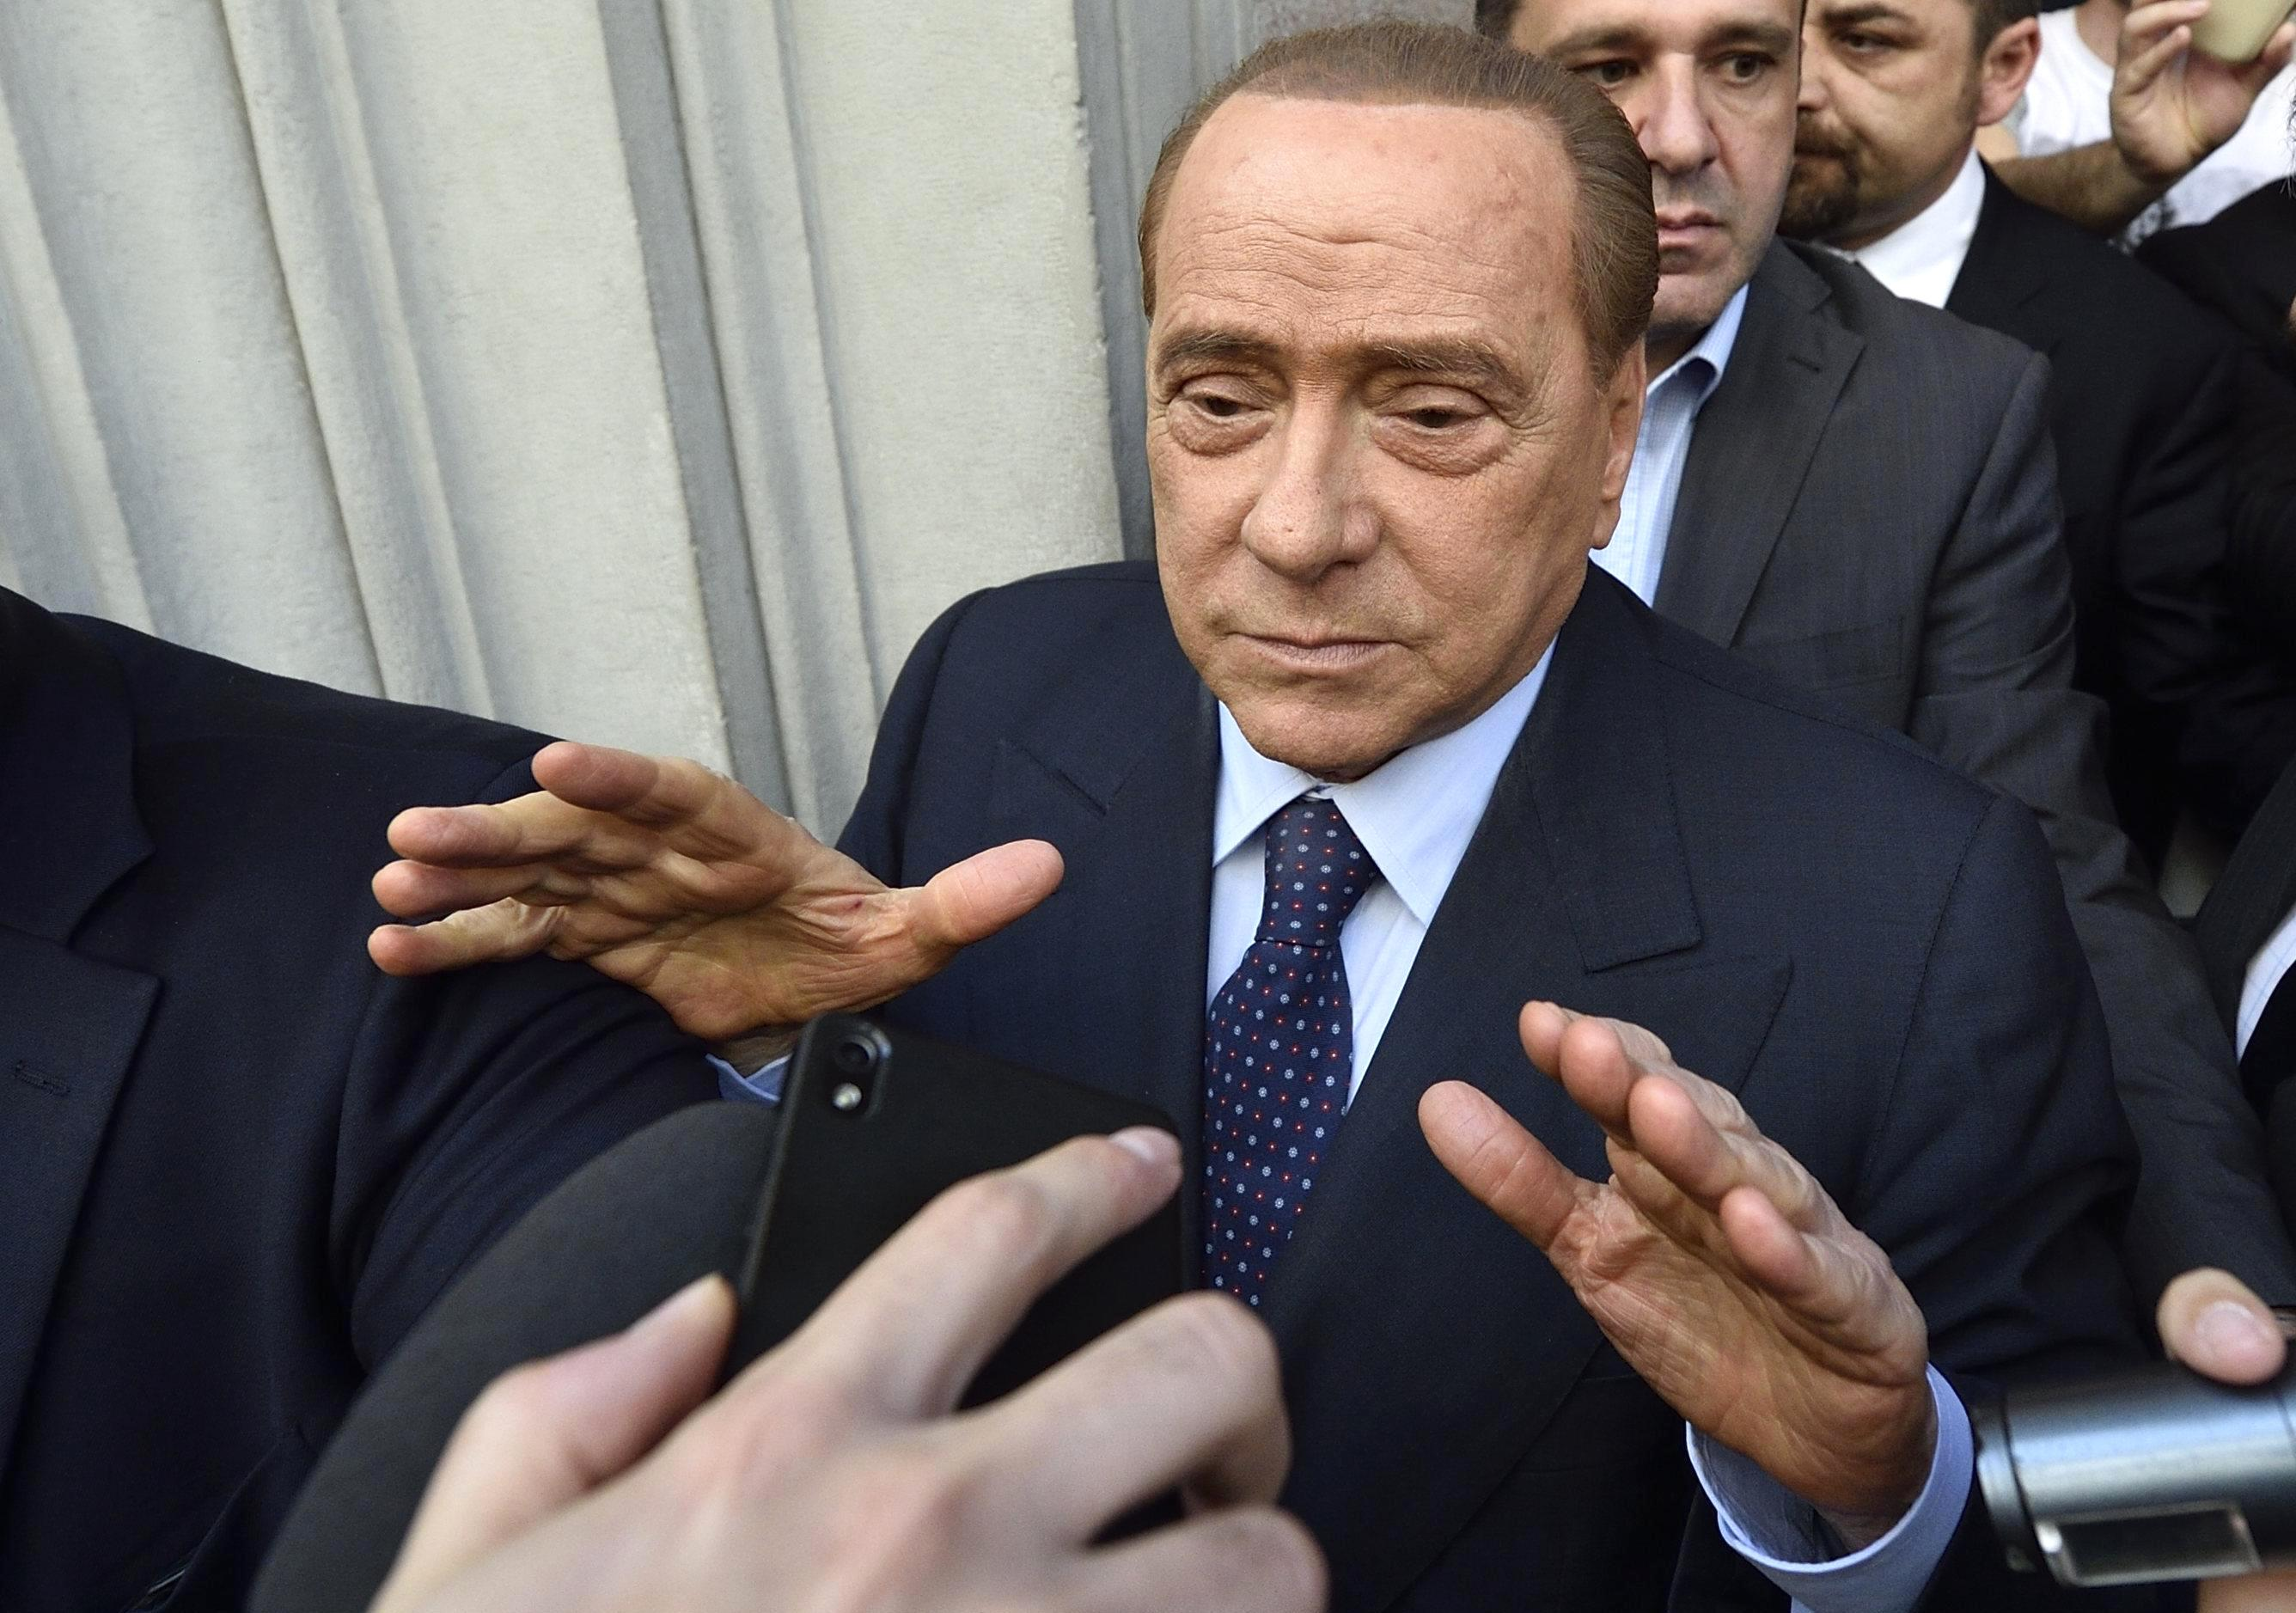 Berlusconi in talks to sell stake in Milan to Thai investor